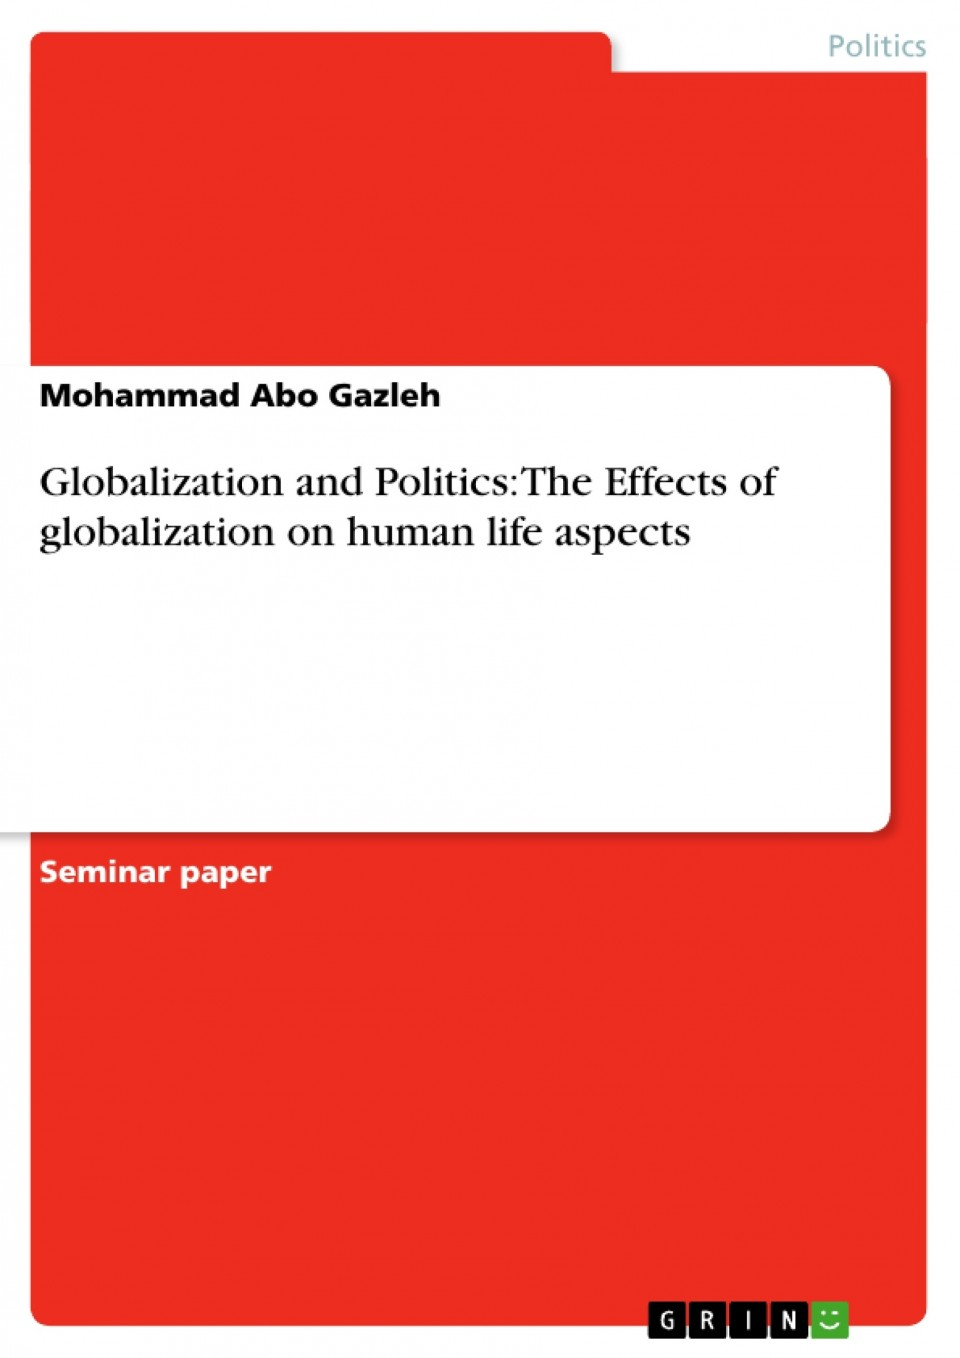 017 110500 0 Globalization Conclusion Essay Wonderful 960